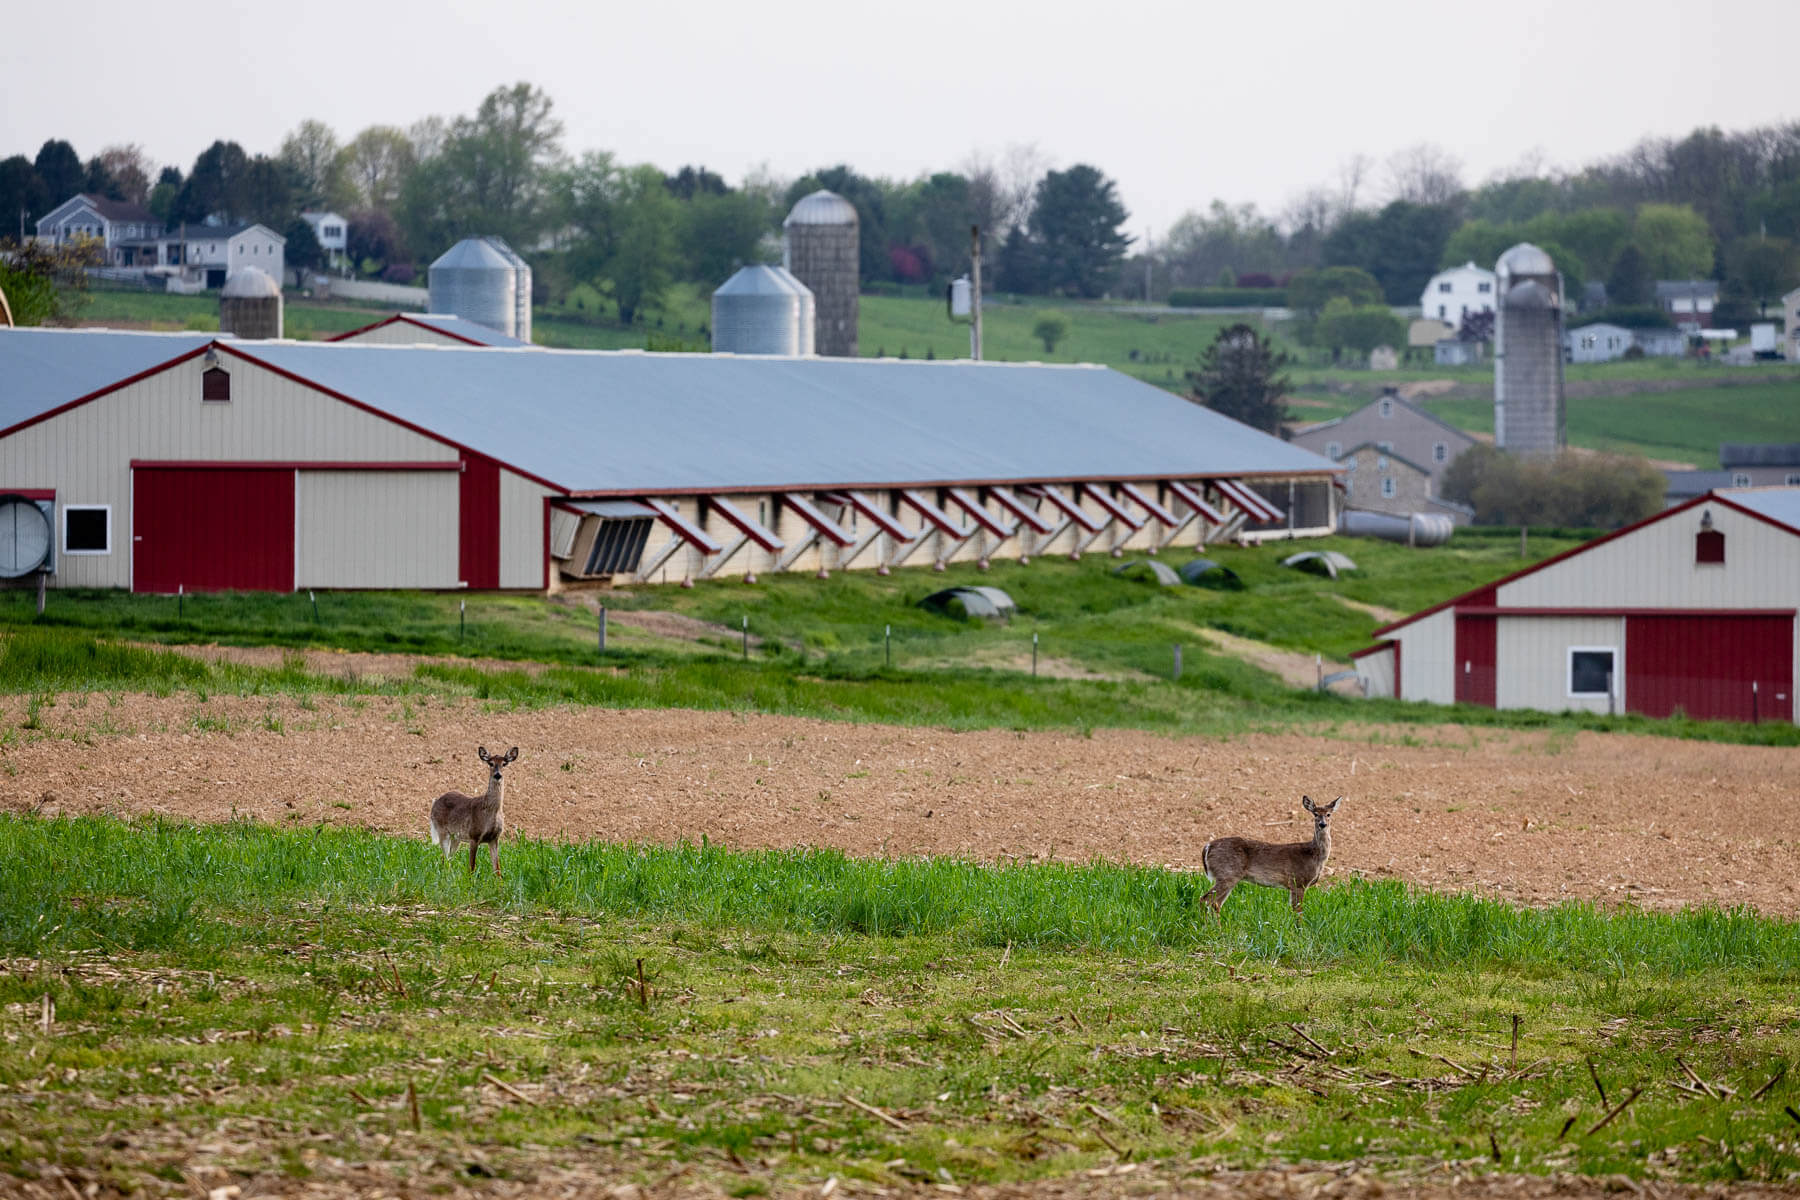 Deer visit farm fields near chicken houses surrounded by open countryside